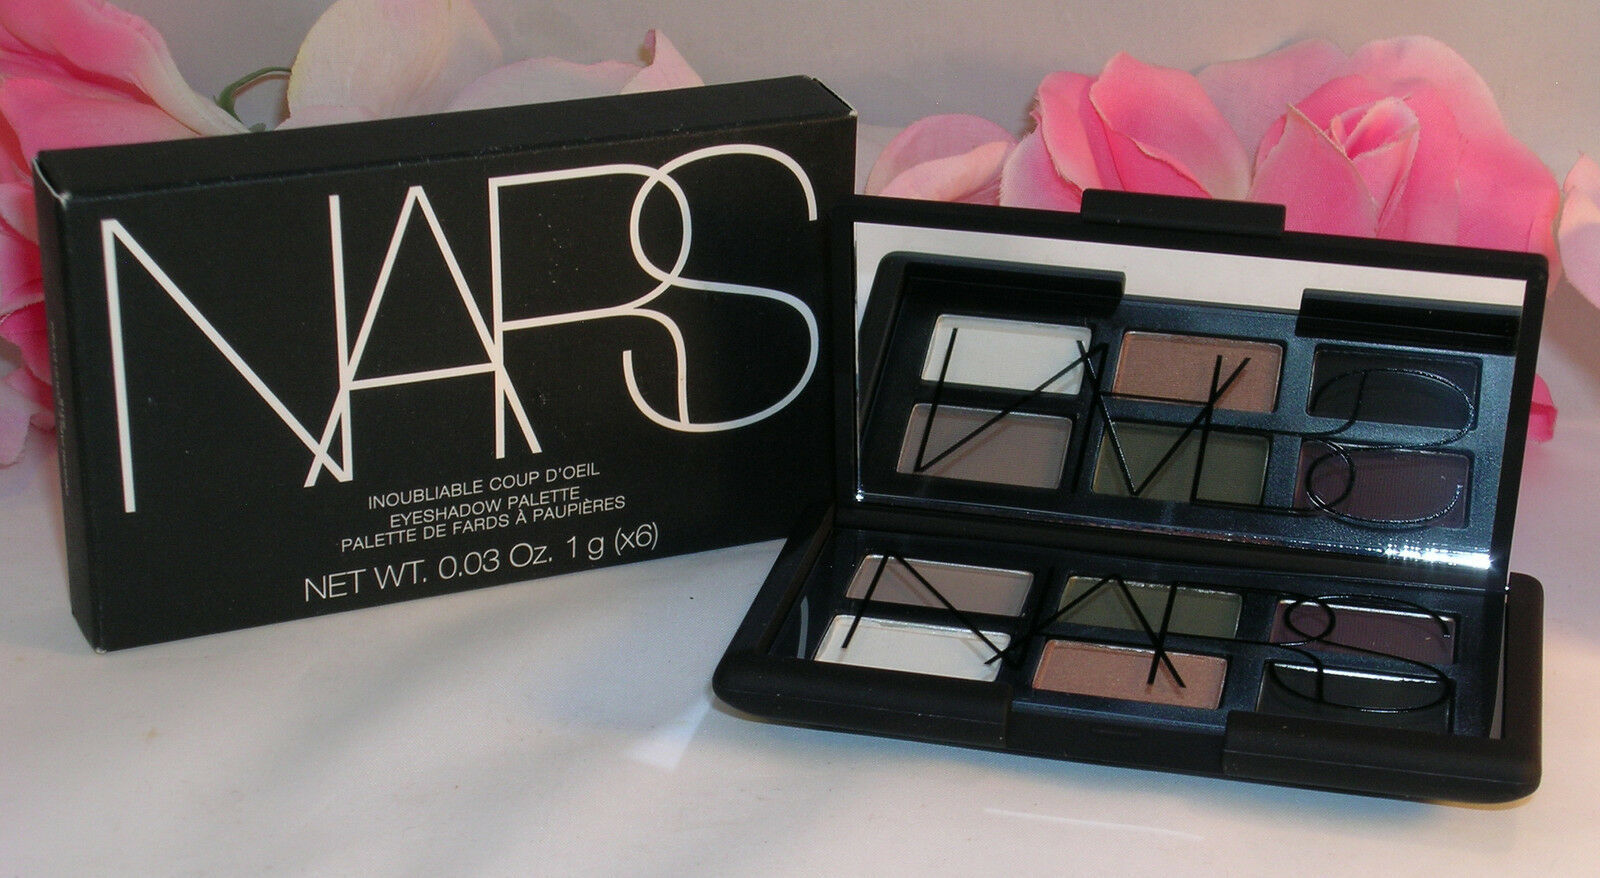 Primary image for New NARS Eye Shadow Palette #8316 Inoubliable Coup D'Oeil 6 Shades Shimmer Matte